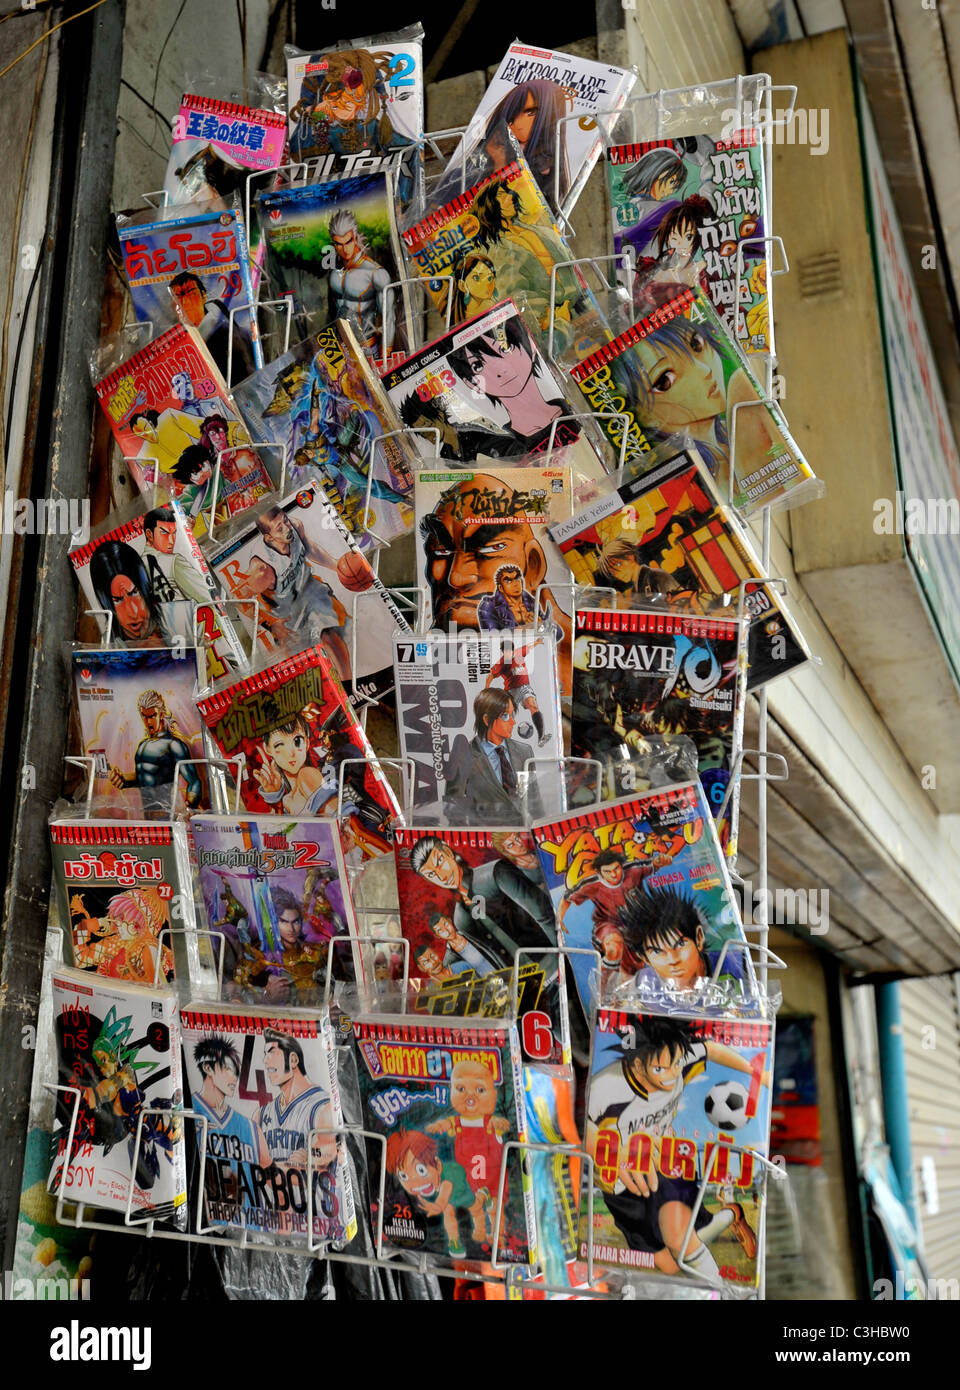 chinese , thai and american comic books for sale, chinatown, bangkok, thailand - Stock Image